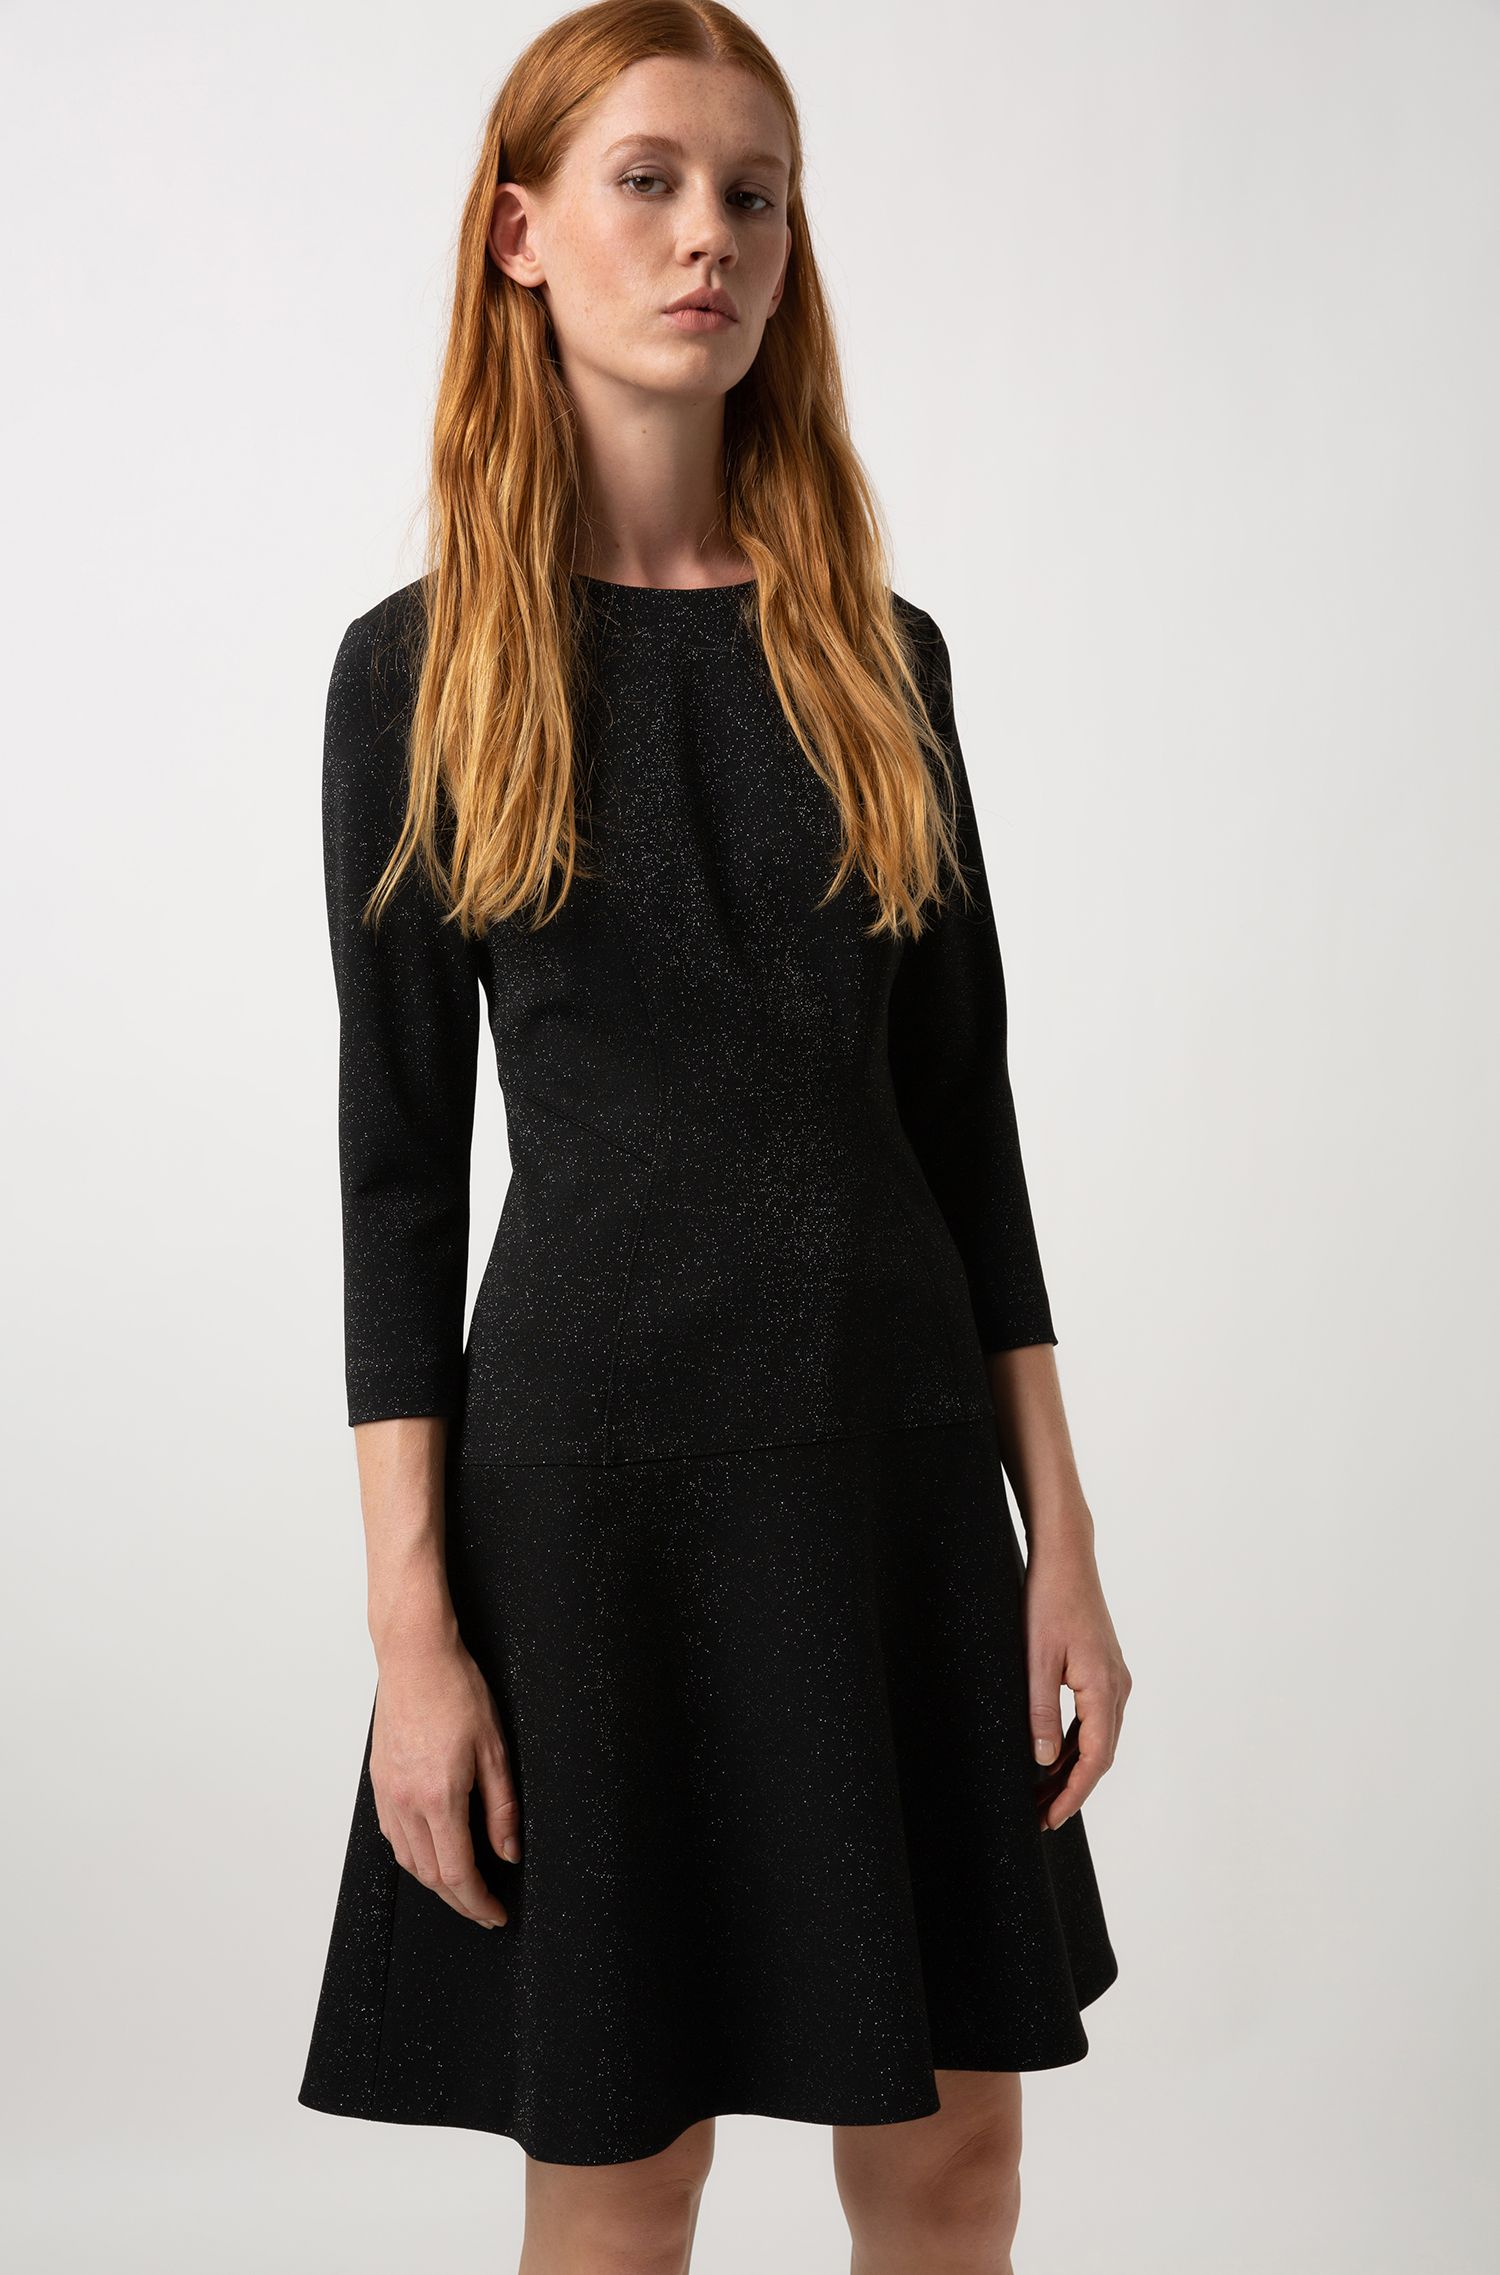 Regular-fit dress in sparkly fabric with long sleeves, Patterned